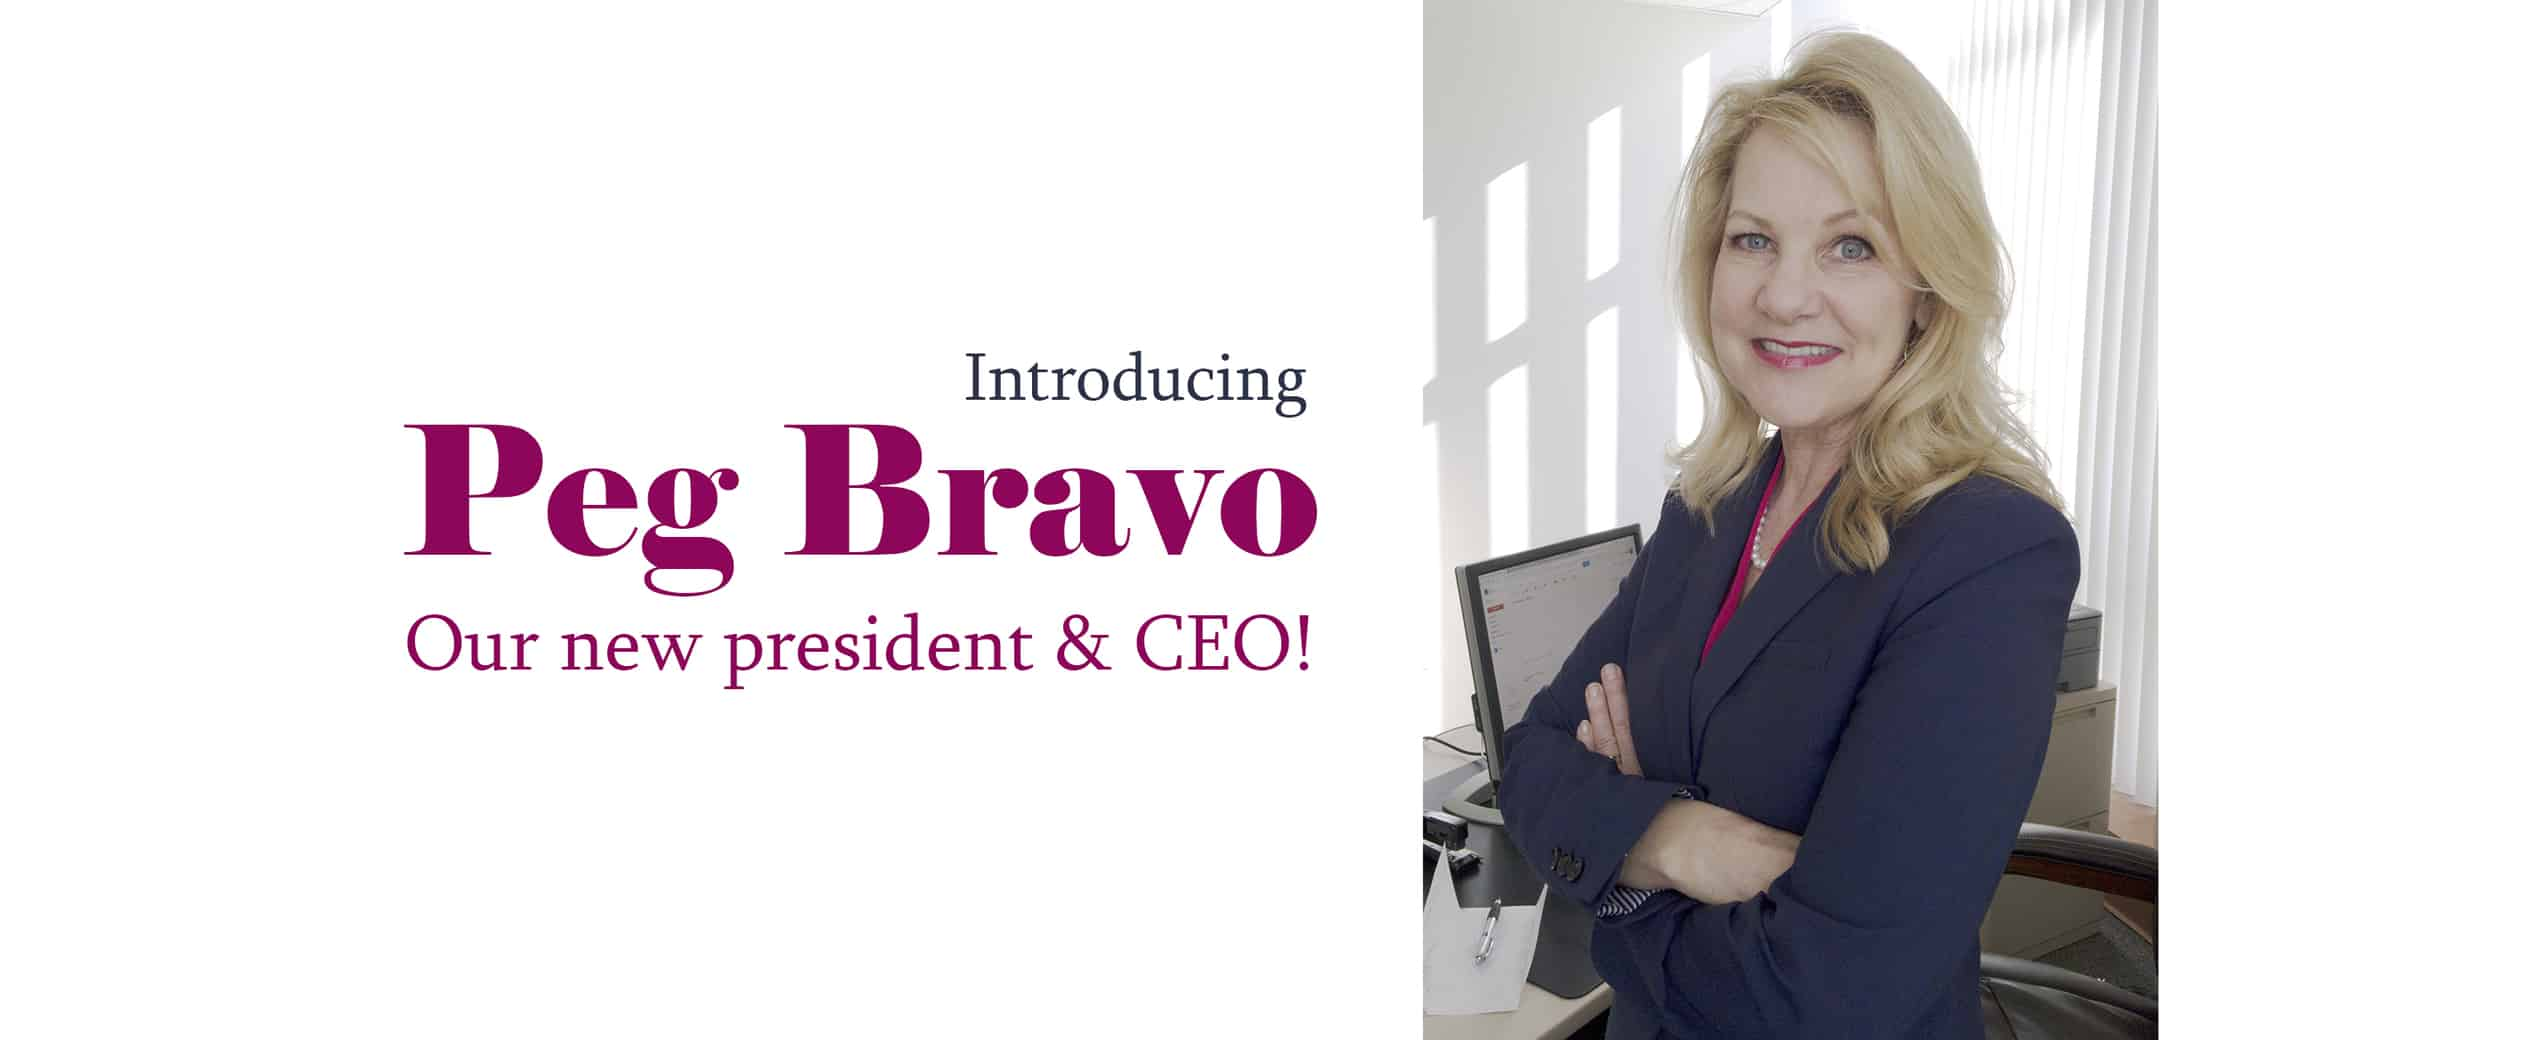 Link to article about Peg Bravo, new president and CEO